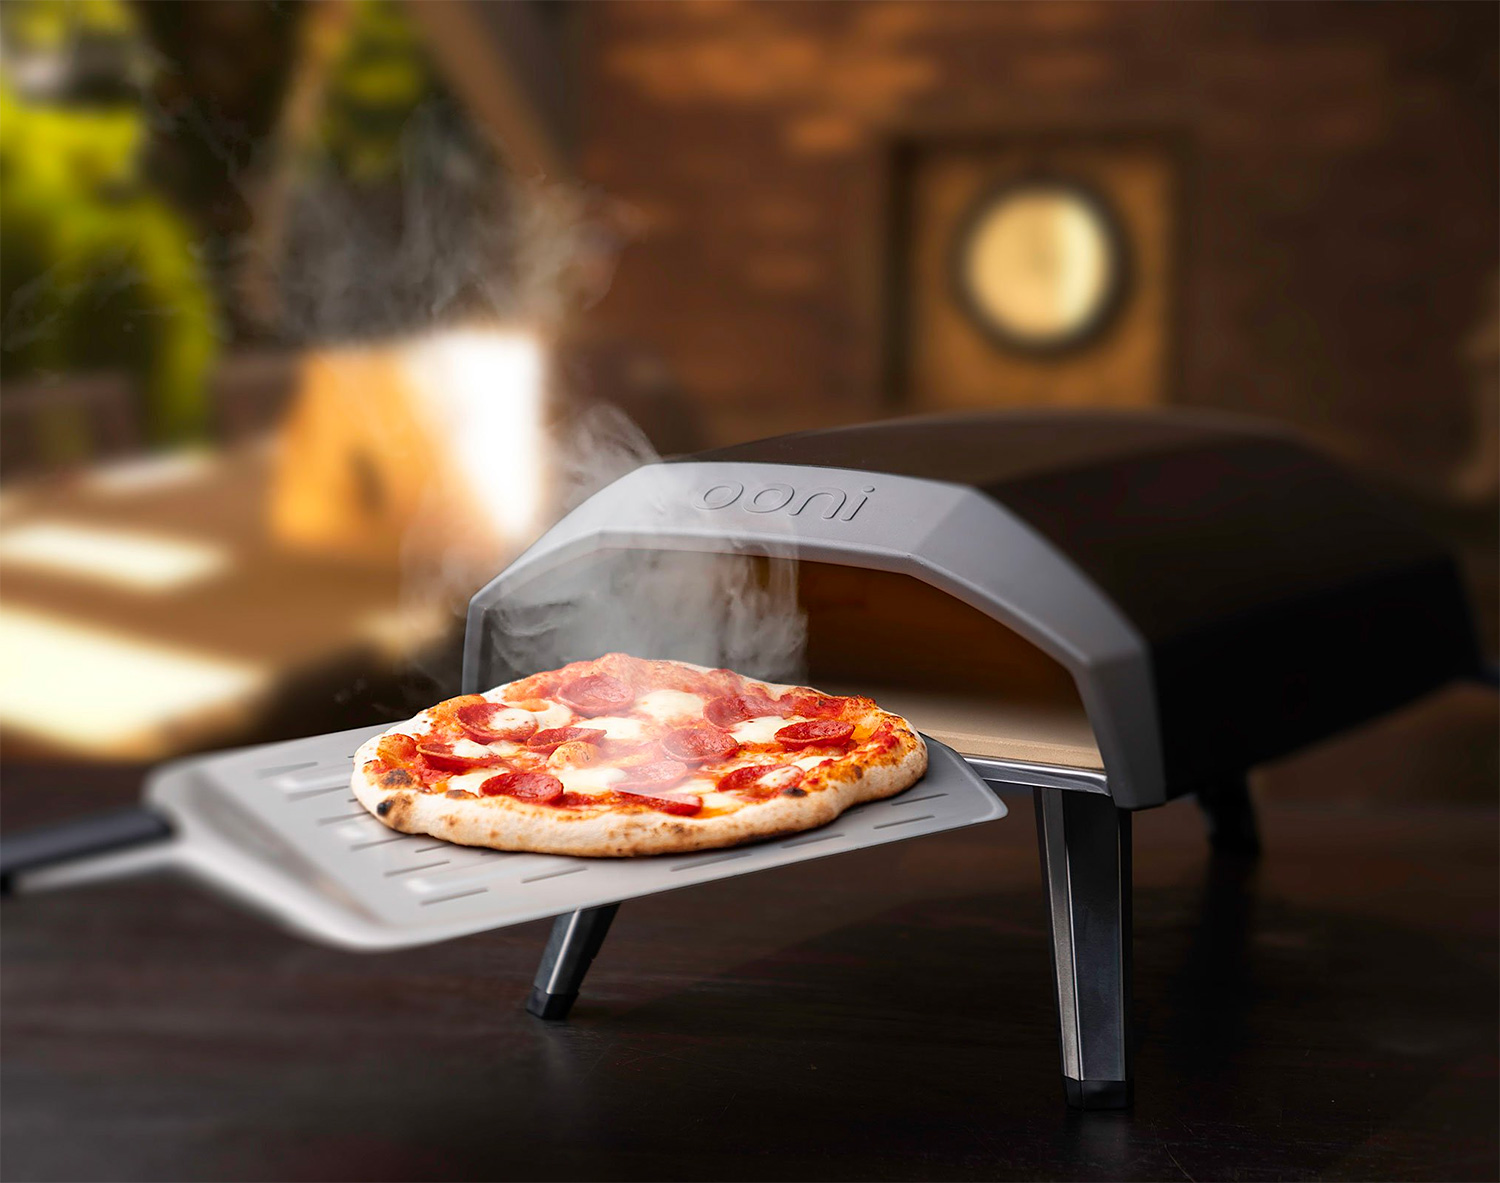 Ooni Introduces Koda Portable Pizza Oven at werd.com